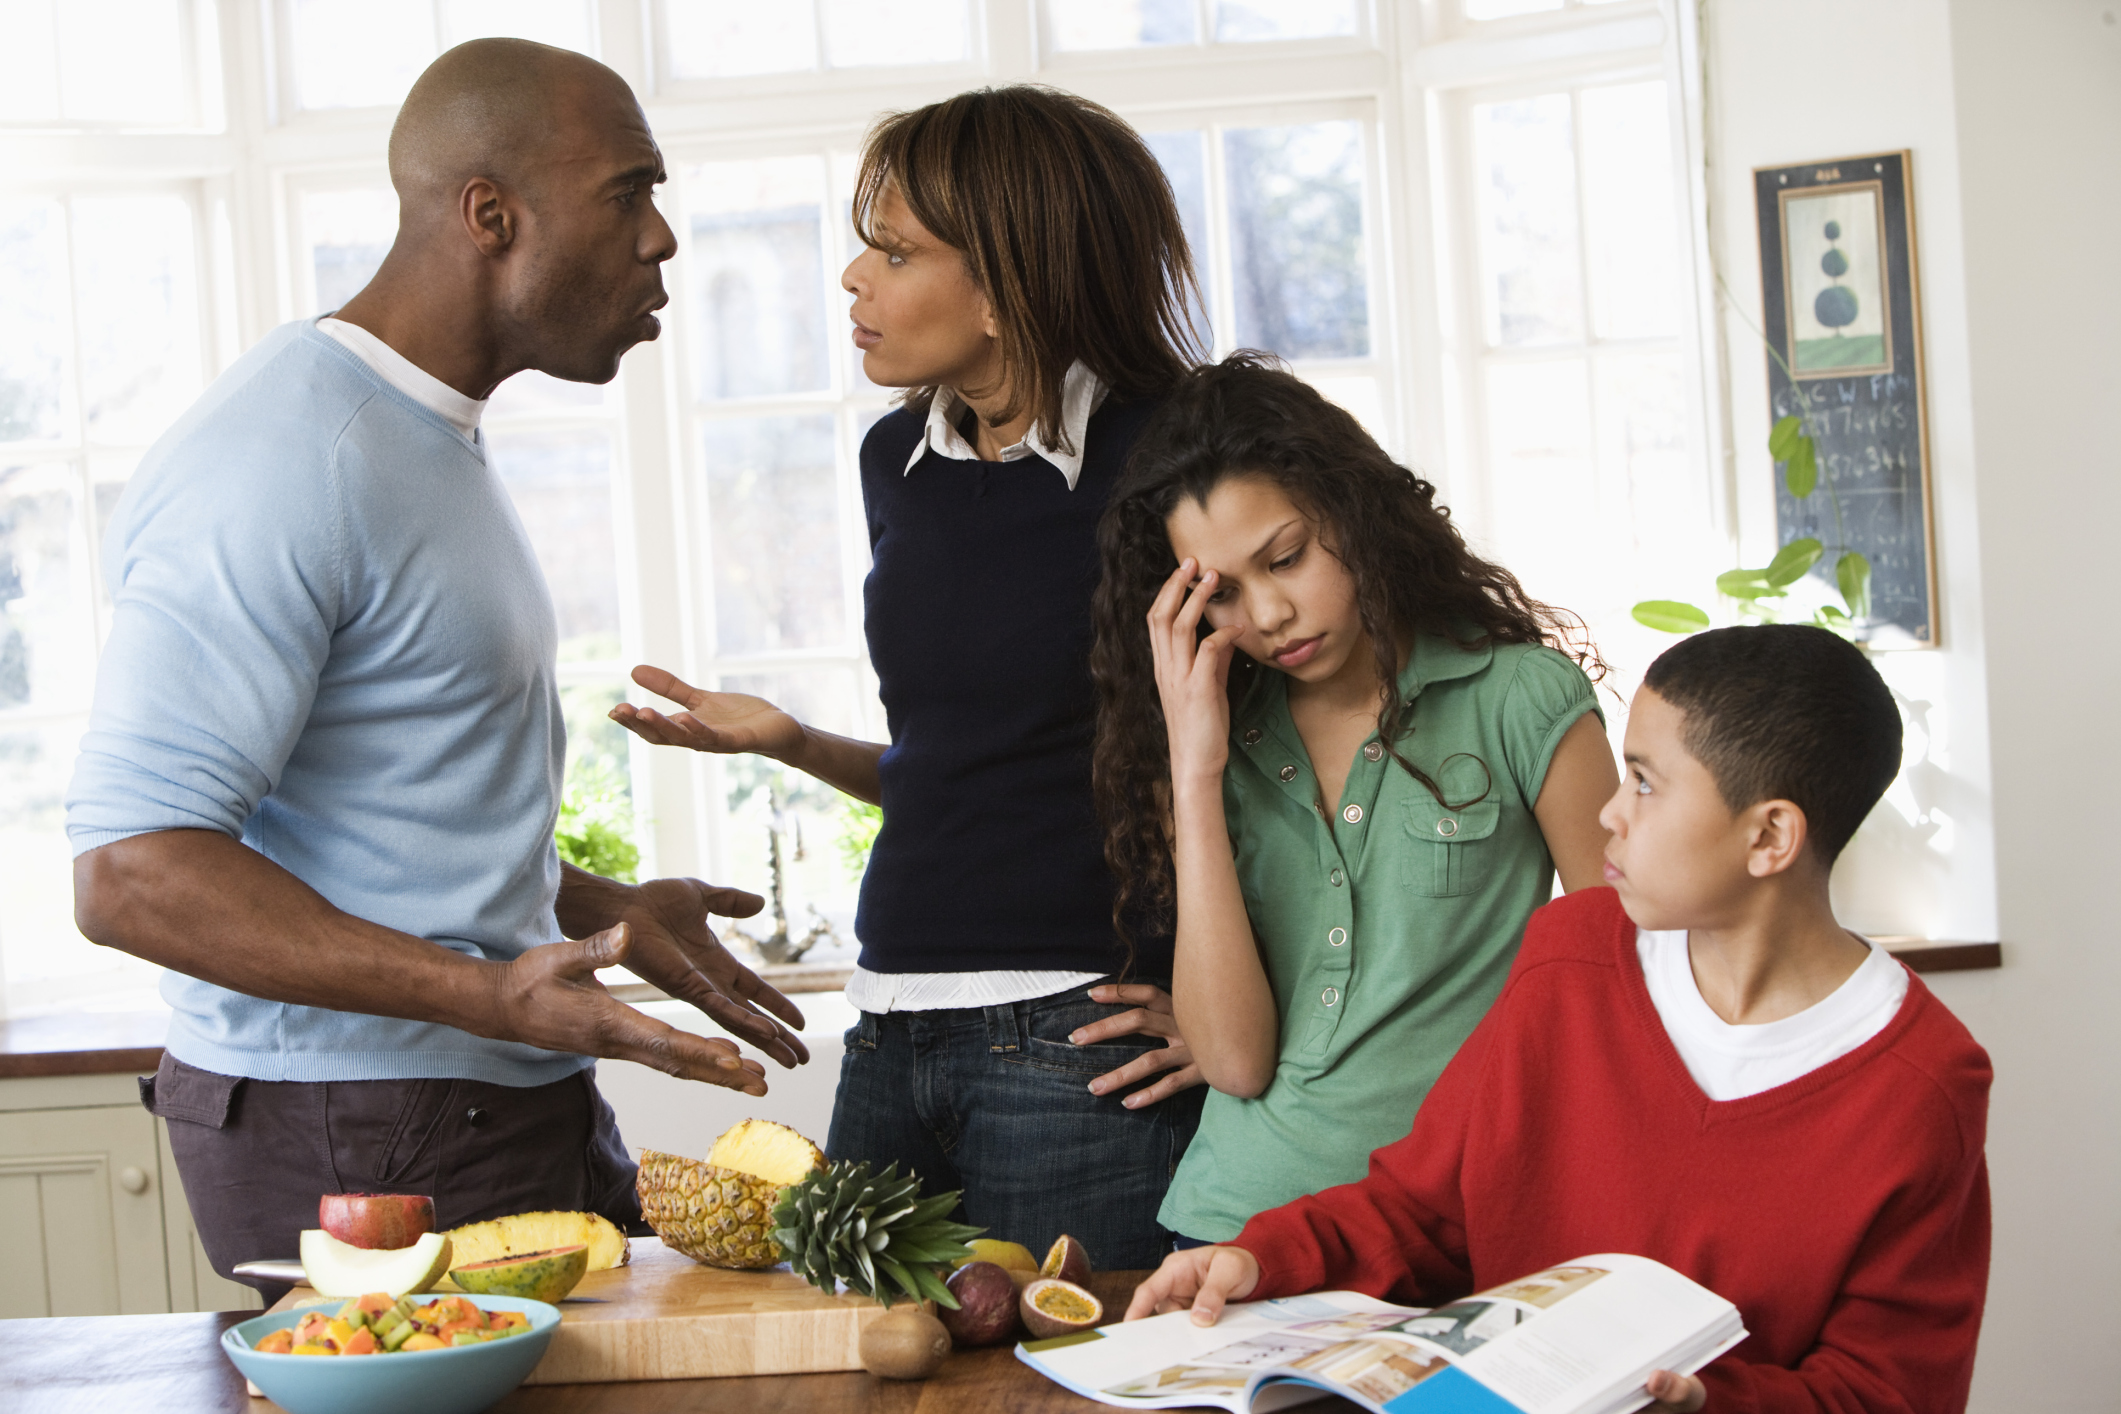 6 Helpful Ways to Help A Family In Crisis